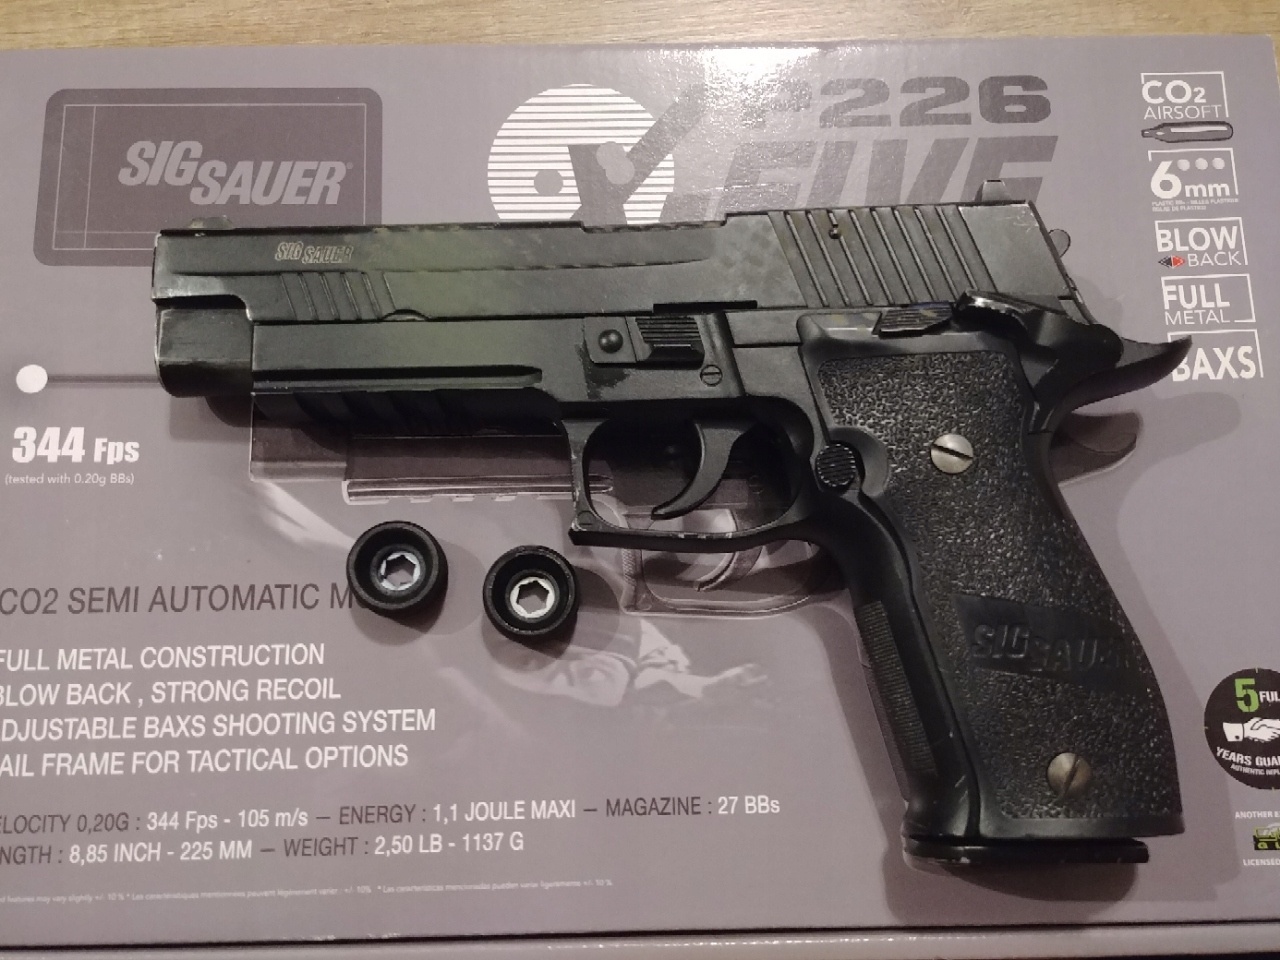 SIG SAUER P226 FUL METAL CO2